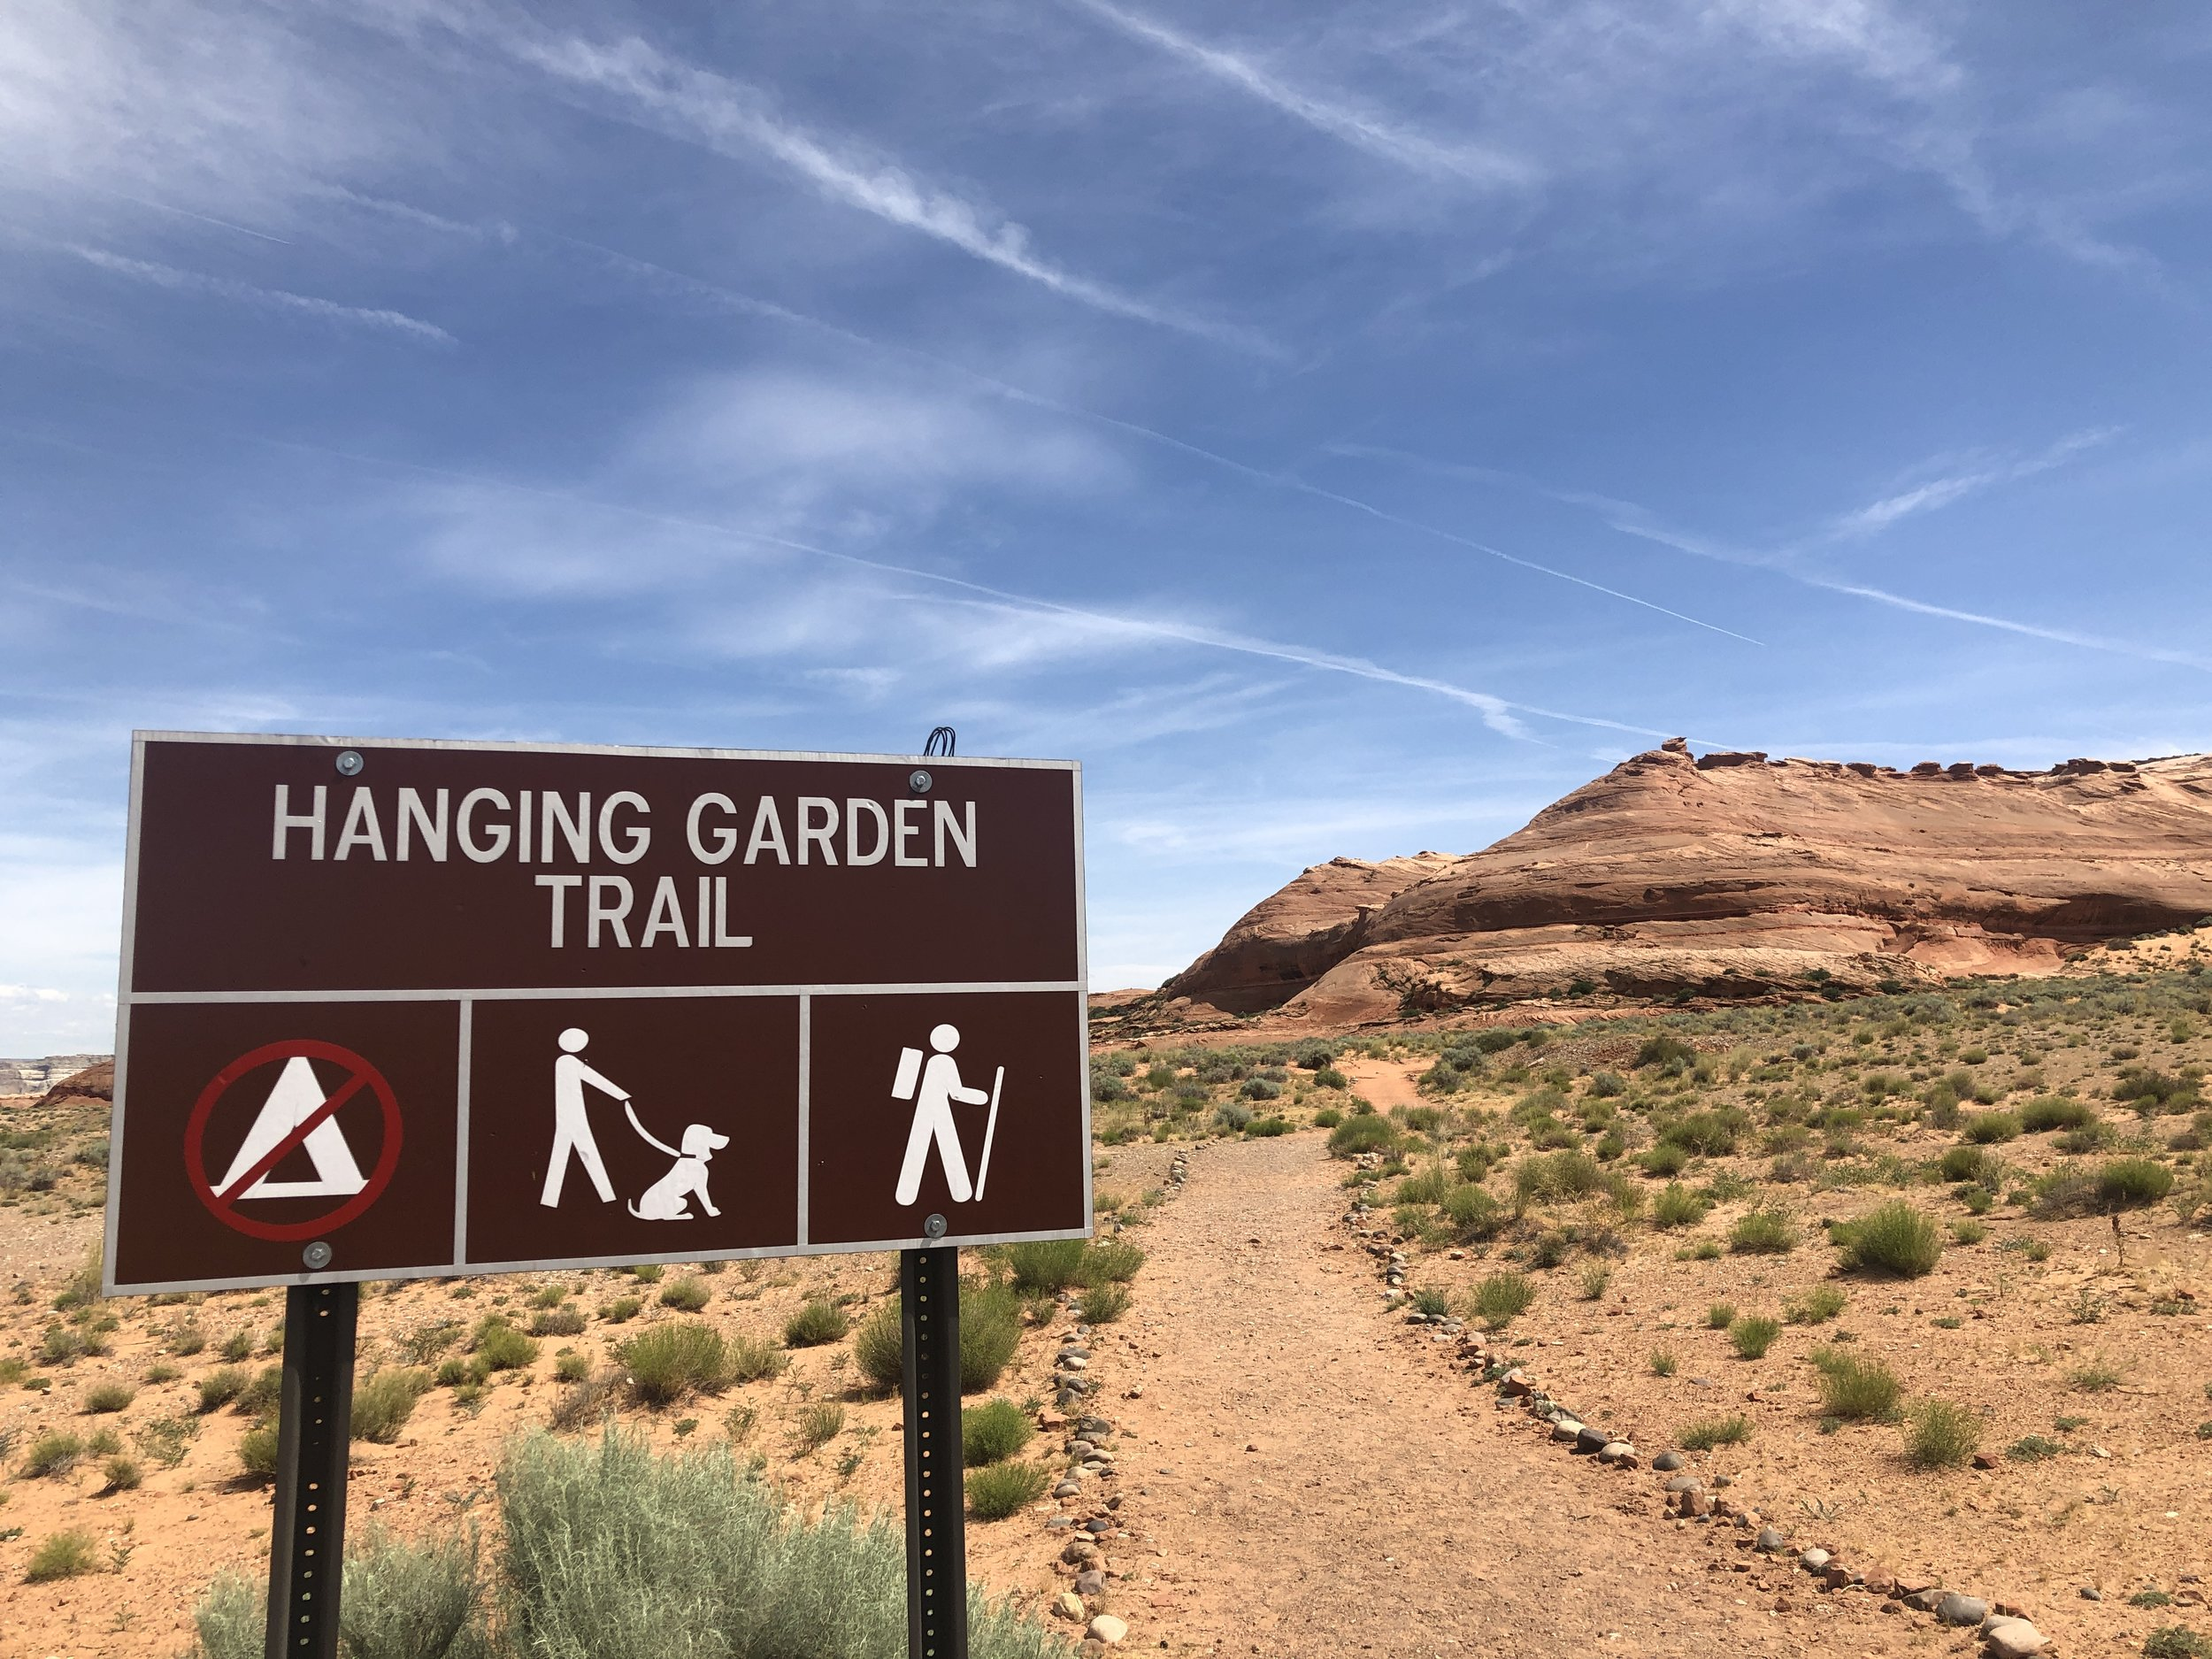 hanging-garden-hike-utah-arizona-out-office-adventure